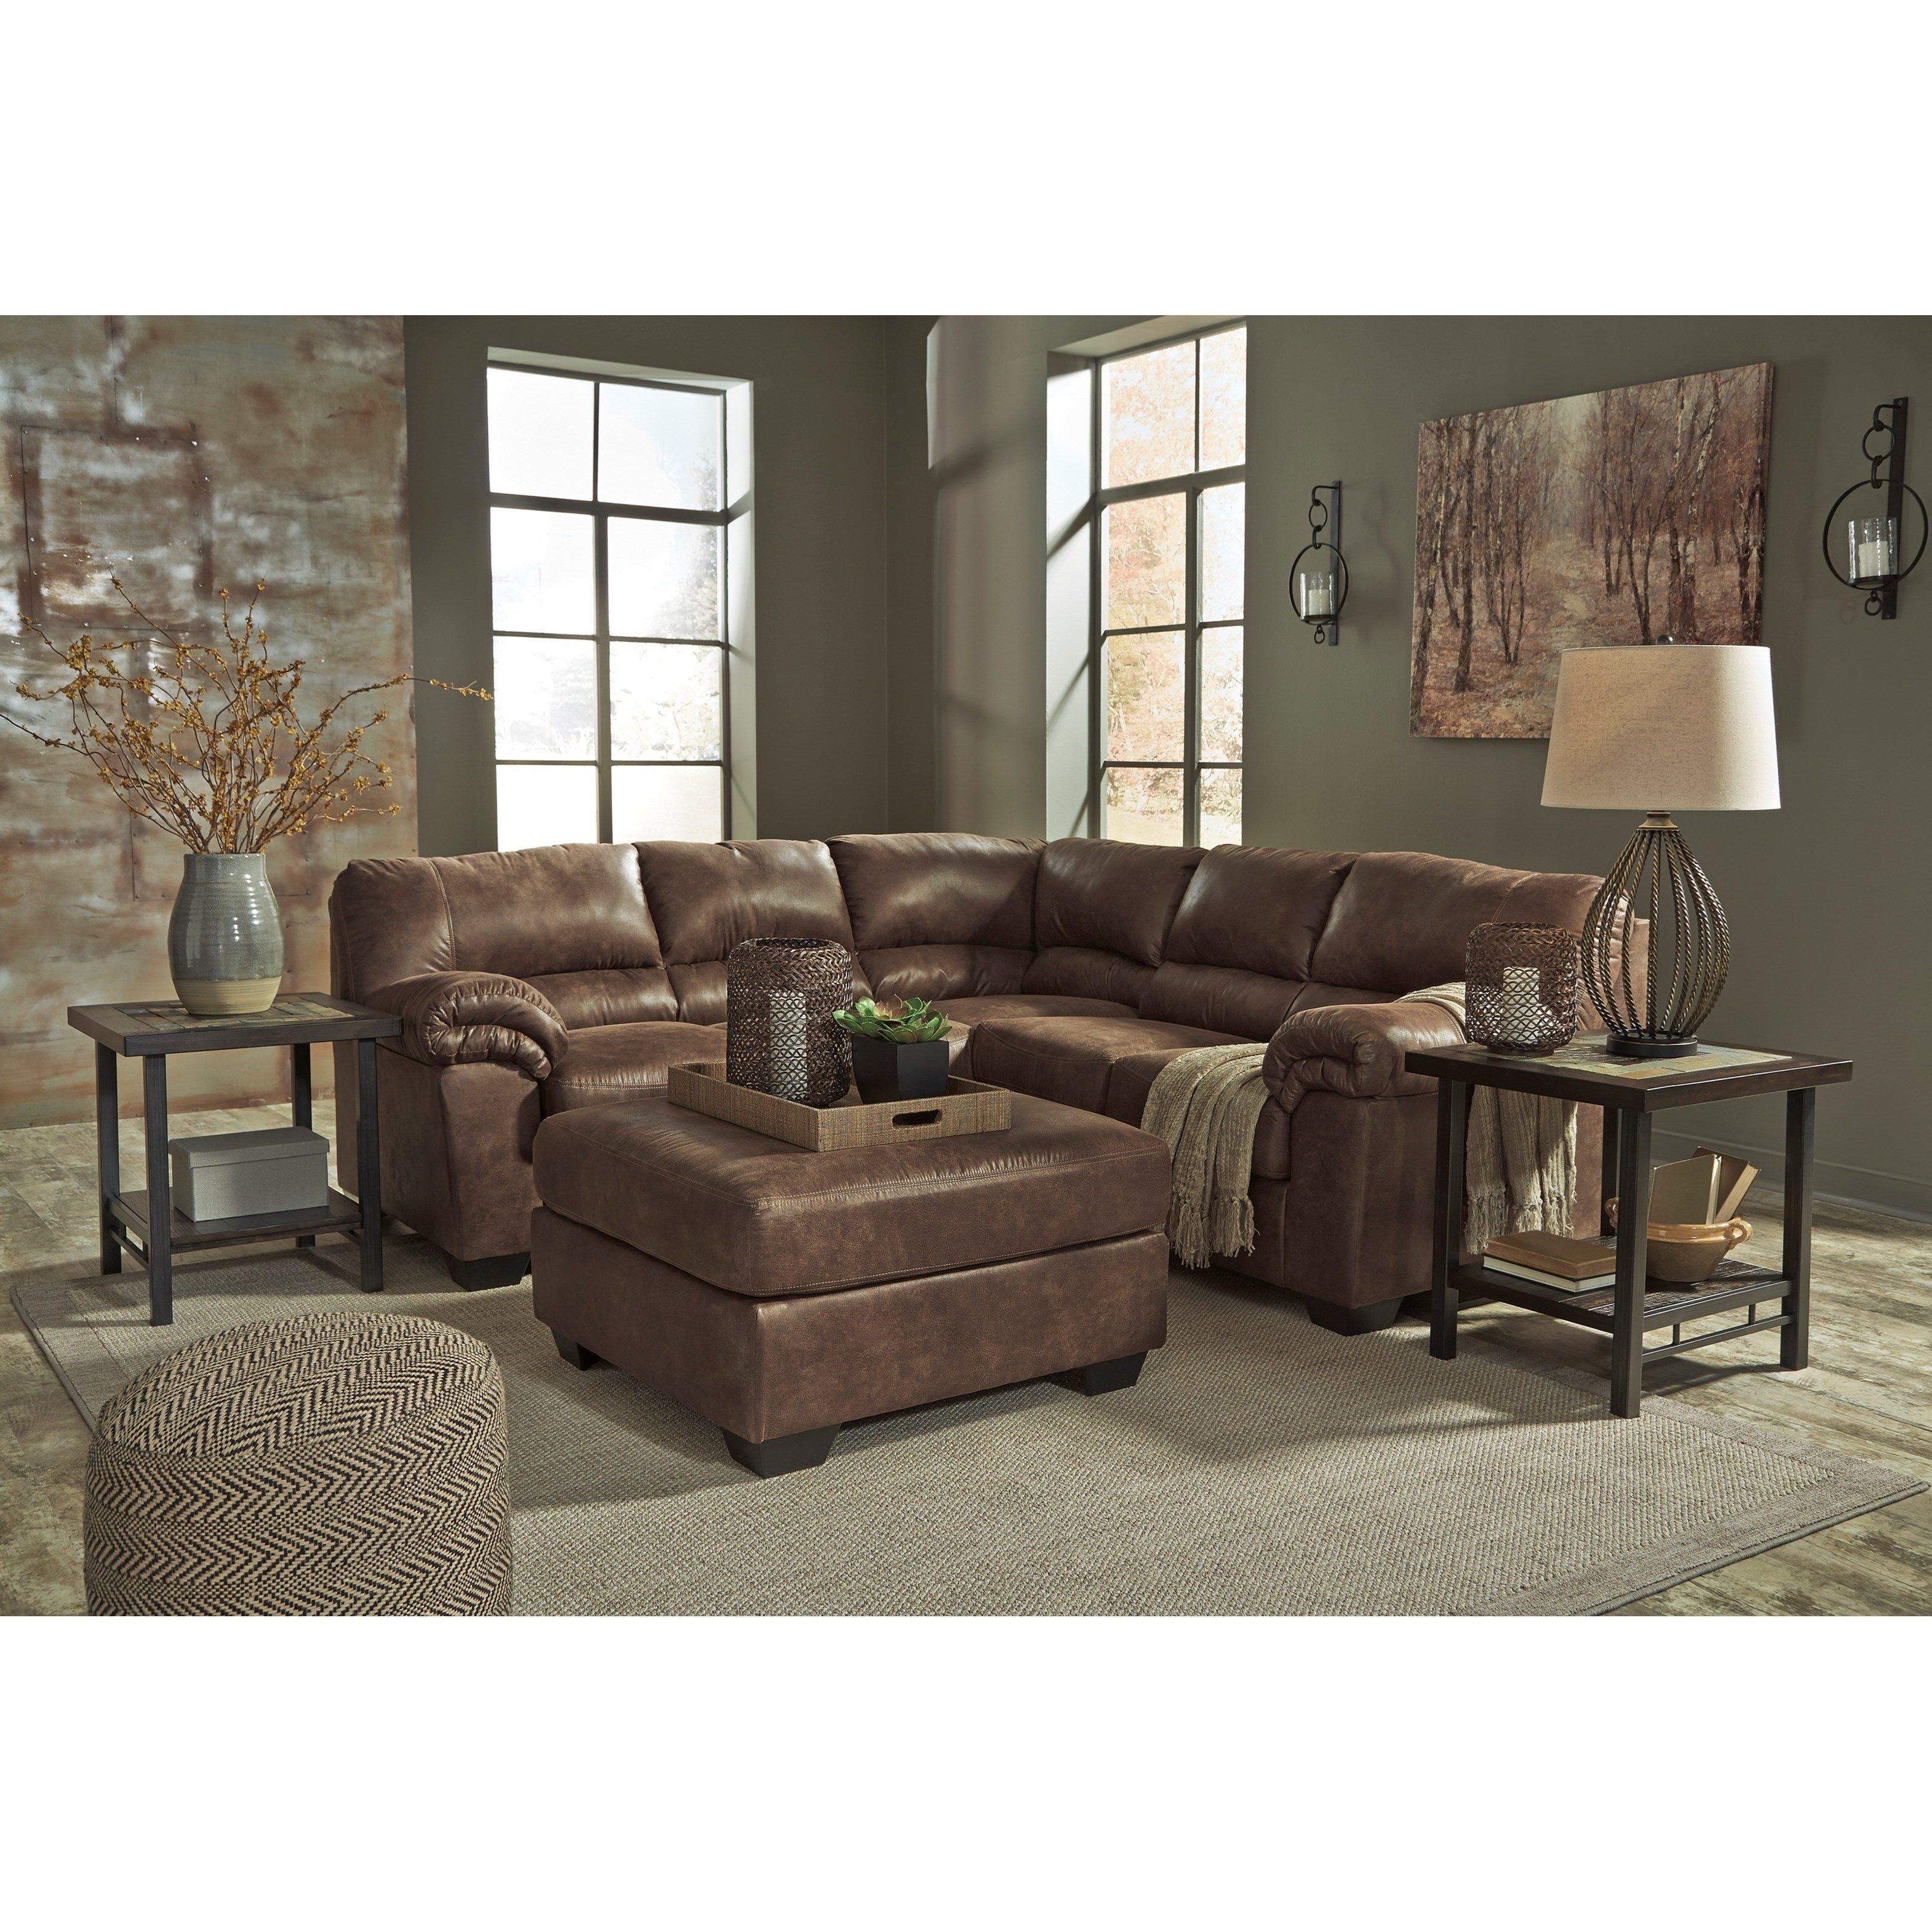 sofa ashley barcelona 2 cuerpos raleigh in fabric signature design bladen two piece faux leather